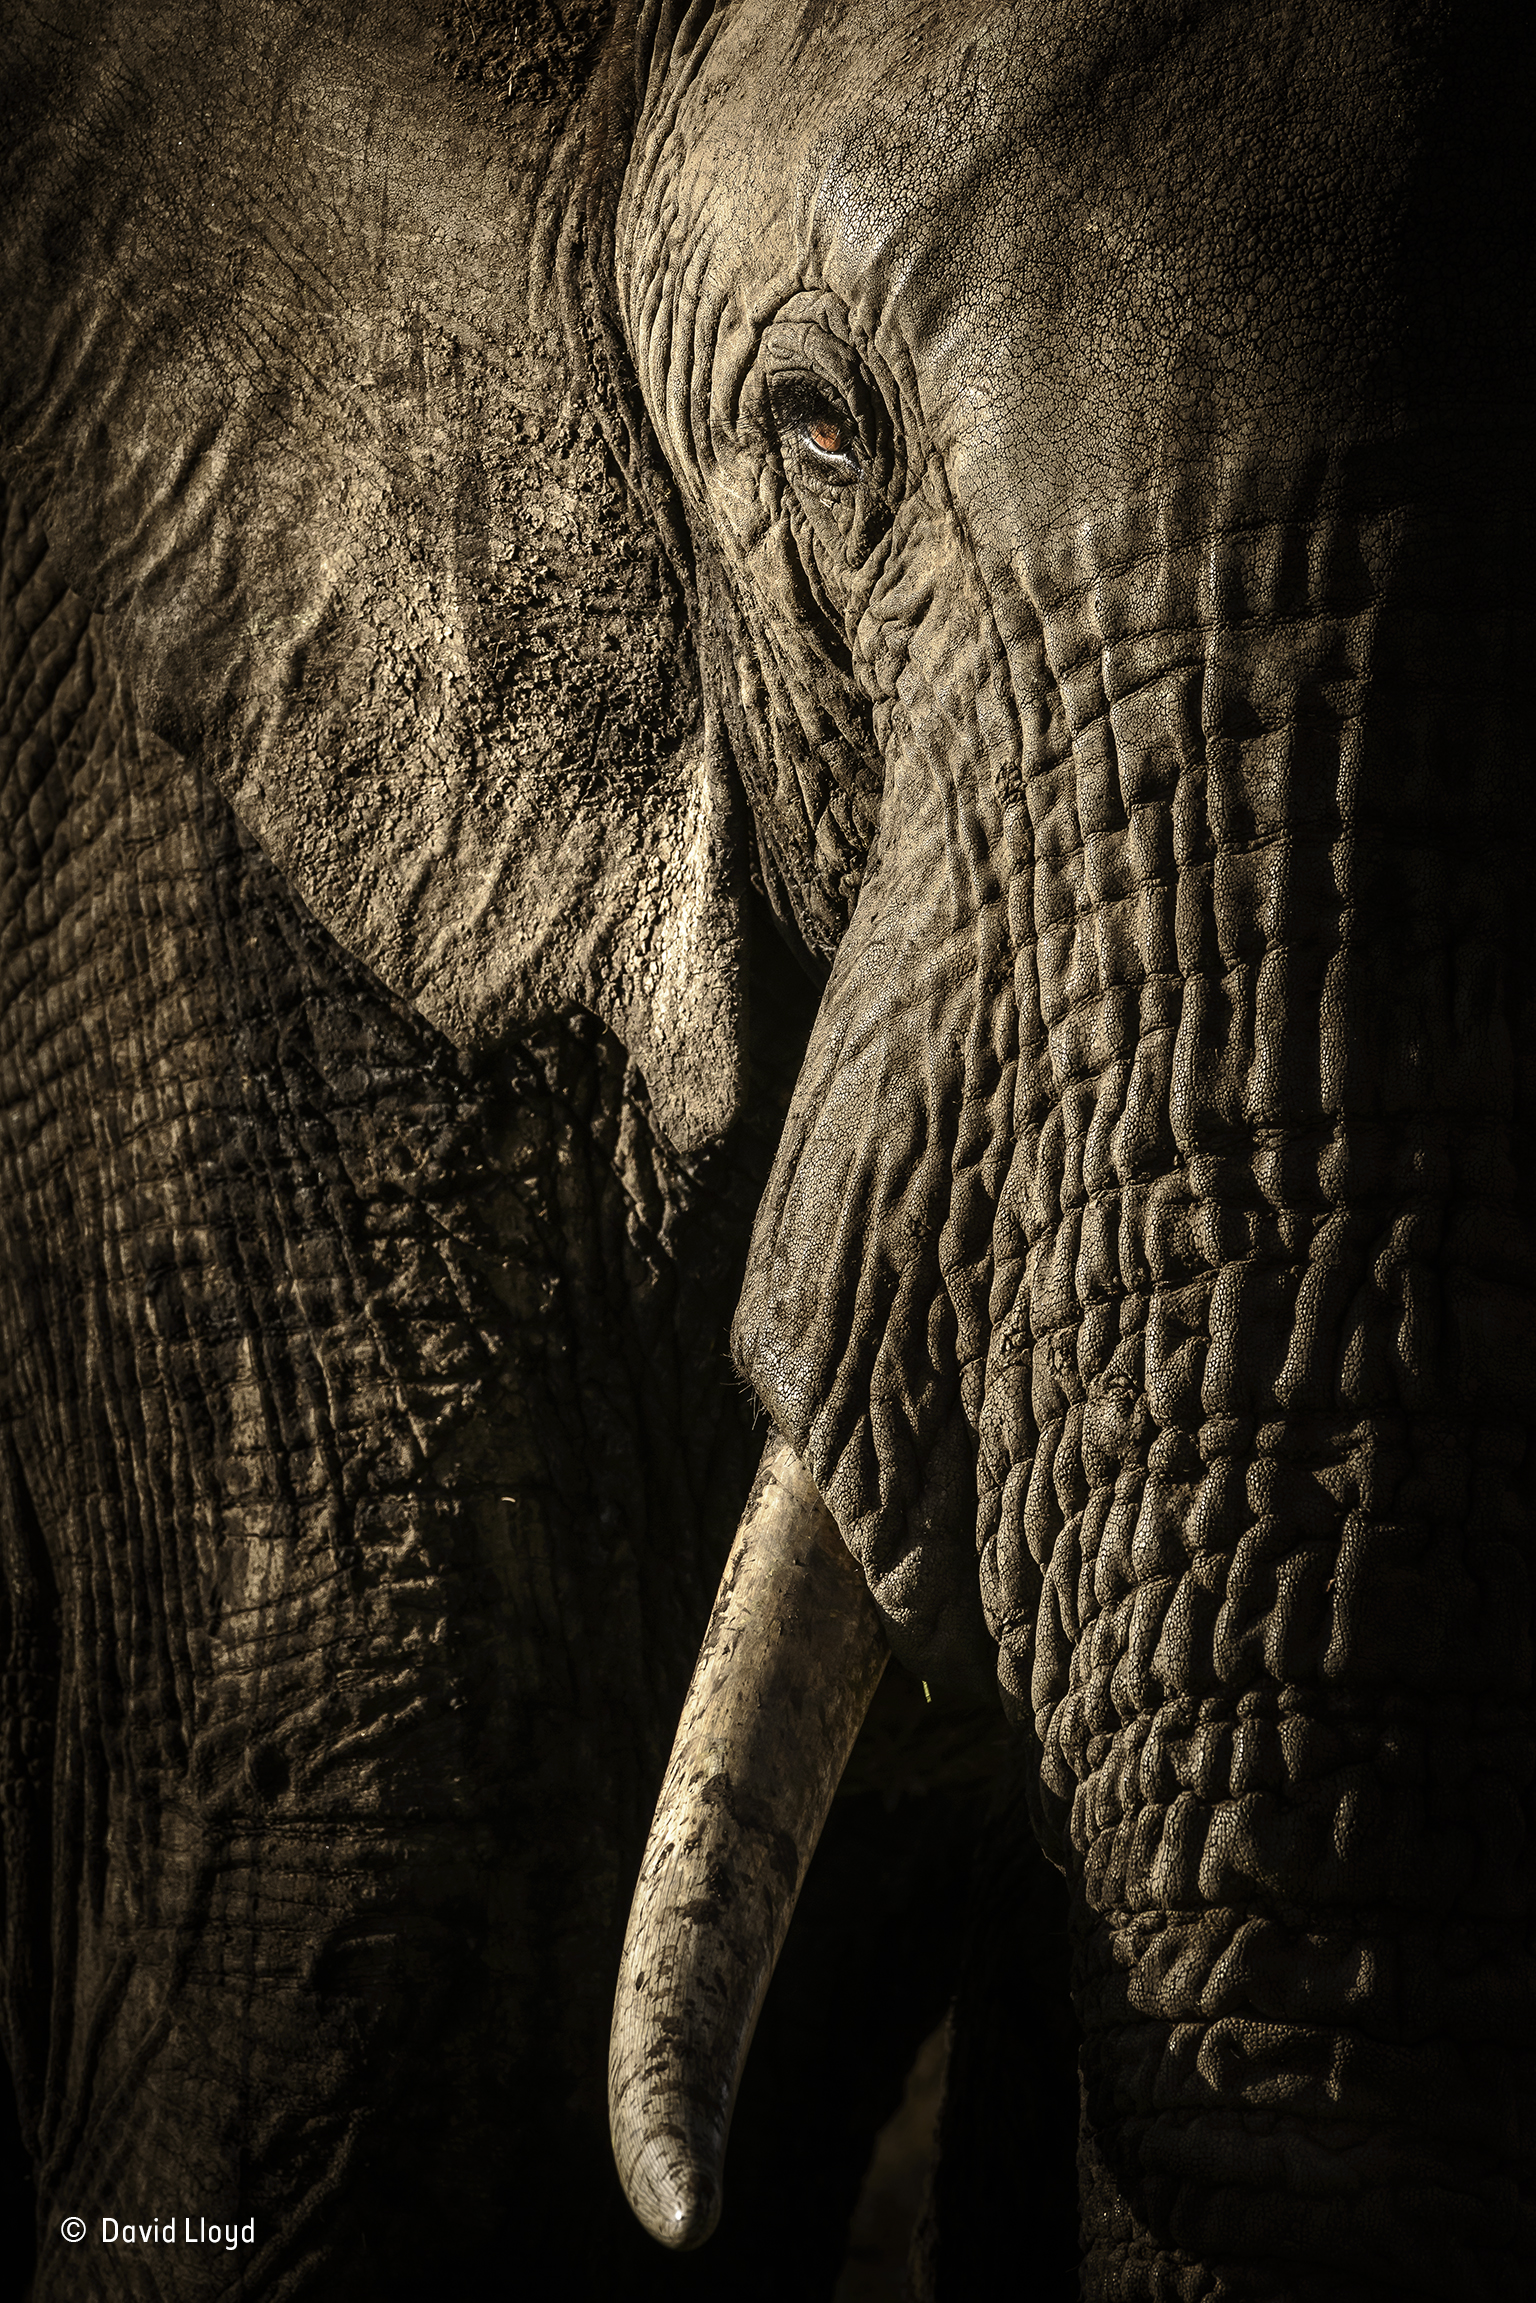 At dusk, in Kenya's Maasai Mara National Reserve, David waited for the herd of elephants on their evening trek to a waterhole. As they got closer to his vehicle, he could see that the mellow light from the fast-setting sun was emphasizing every wrinkle and hair. For a photographer who enjoys working with texture, this was a gift. When they were just a few metres away, he could see the different qualities of different parts of their bodies – the deep ridges of their trunks, the mud-caked ears and the patina of dried dirt on their tusks. The elephants ambled by in near silence, peaceful and relaxed. The female leading the dozen-strong herd – probably the matriarch – looked straight at him, her eye a glowing amber dot in the heavy folds of skin. Her gaze was, he says, full of respect and intelligence – the essence of sentience. Nikon D800E + 400mm f2.8 lens; 1/500 sec at f13 (–0.3 e/v); ISO 1000.